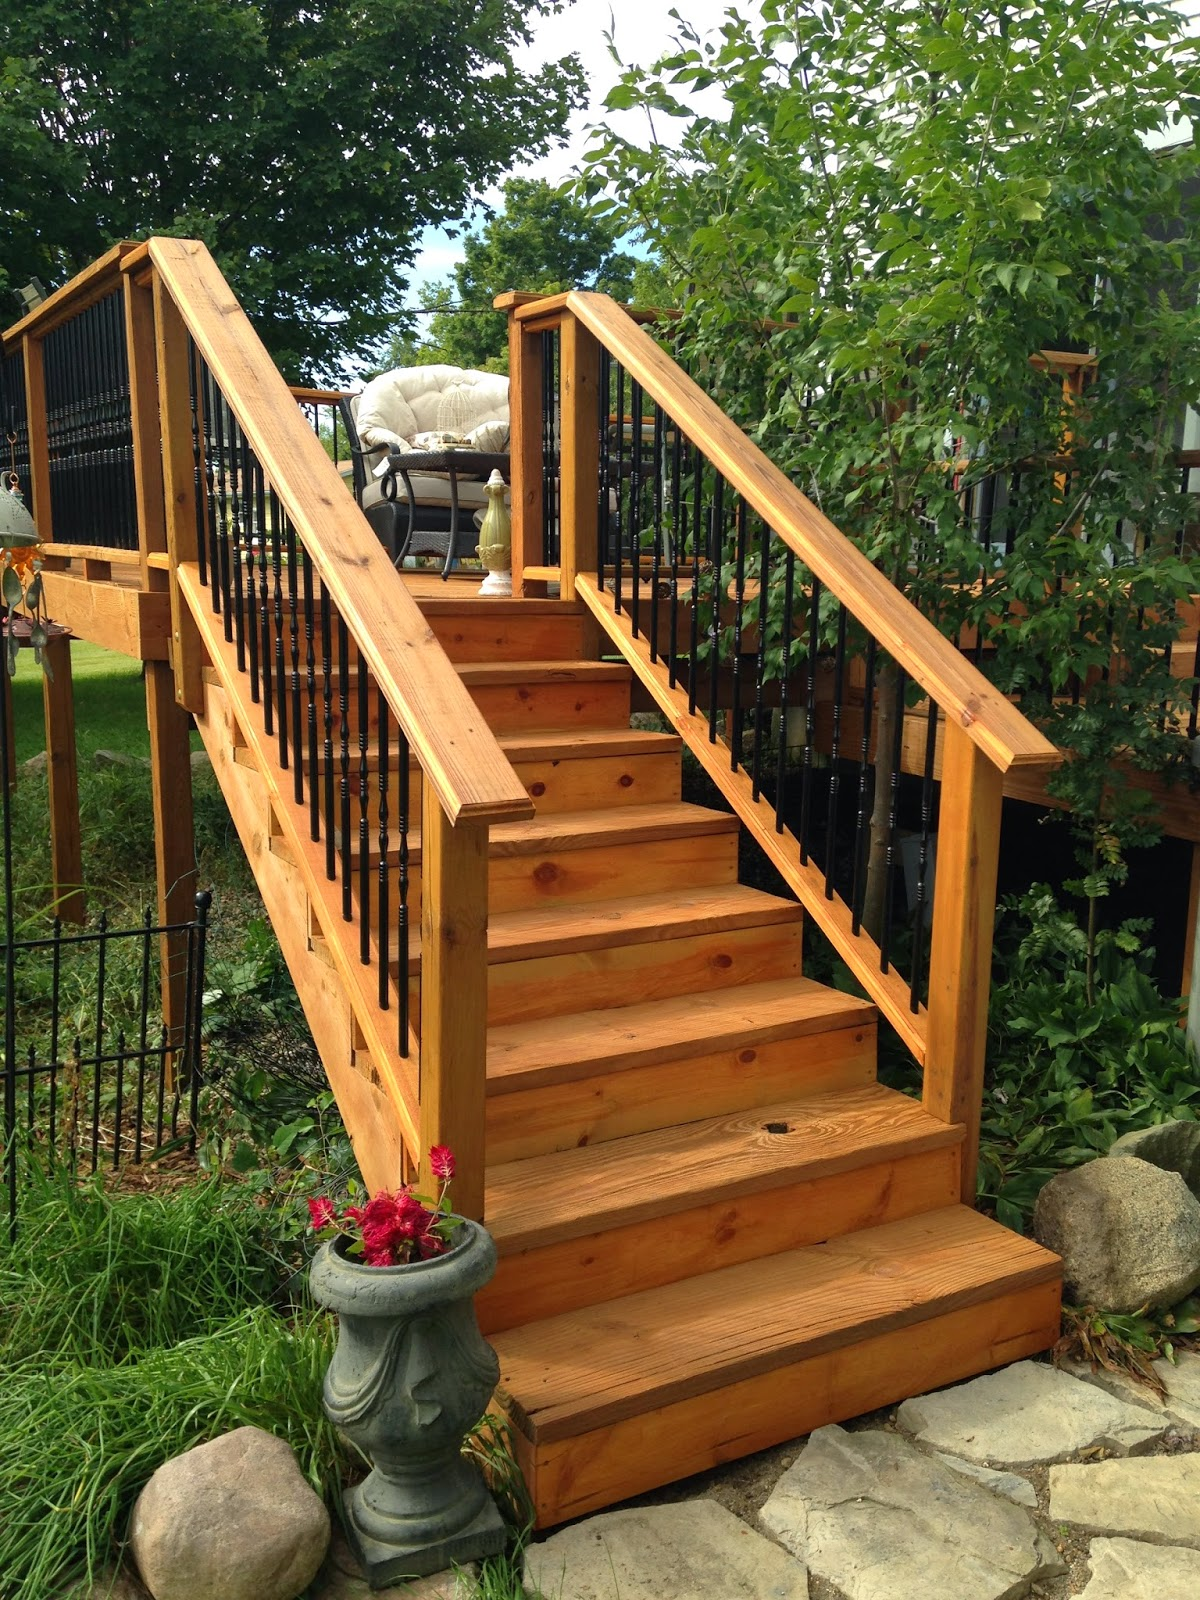 Old Victorian House: Deck & Railing